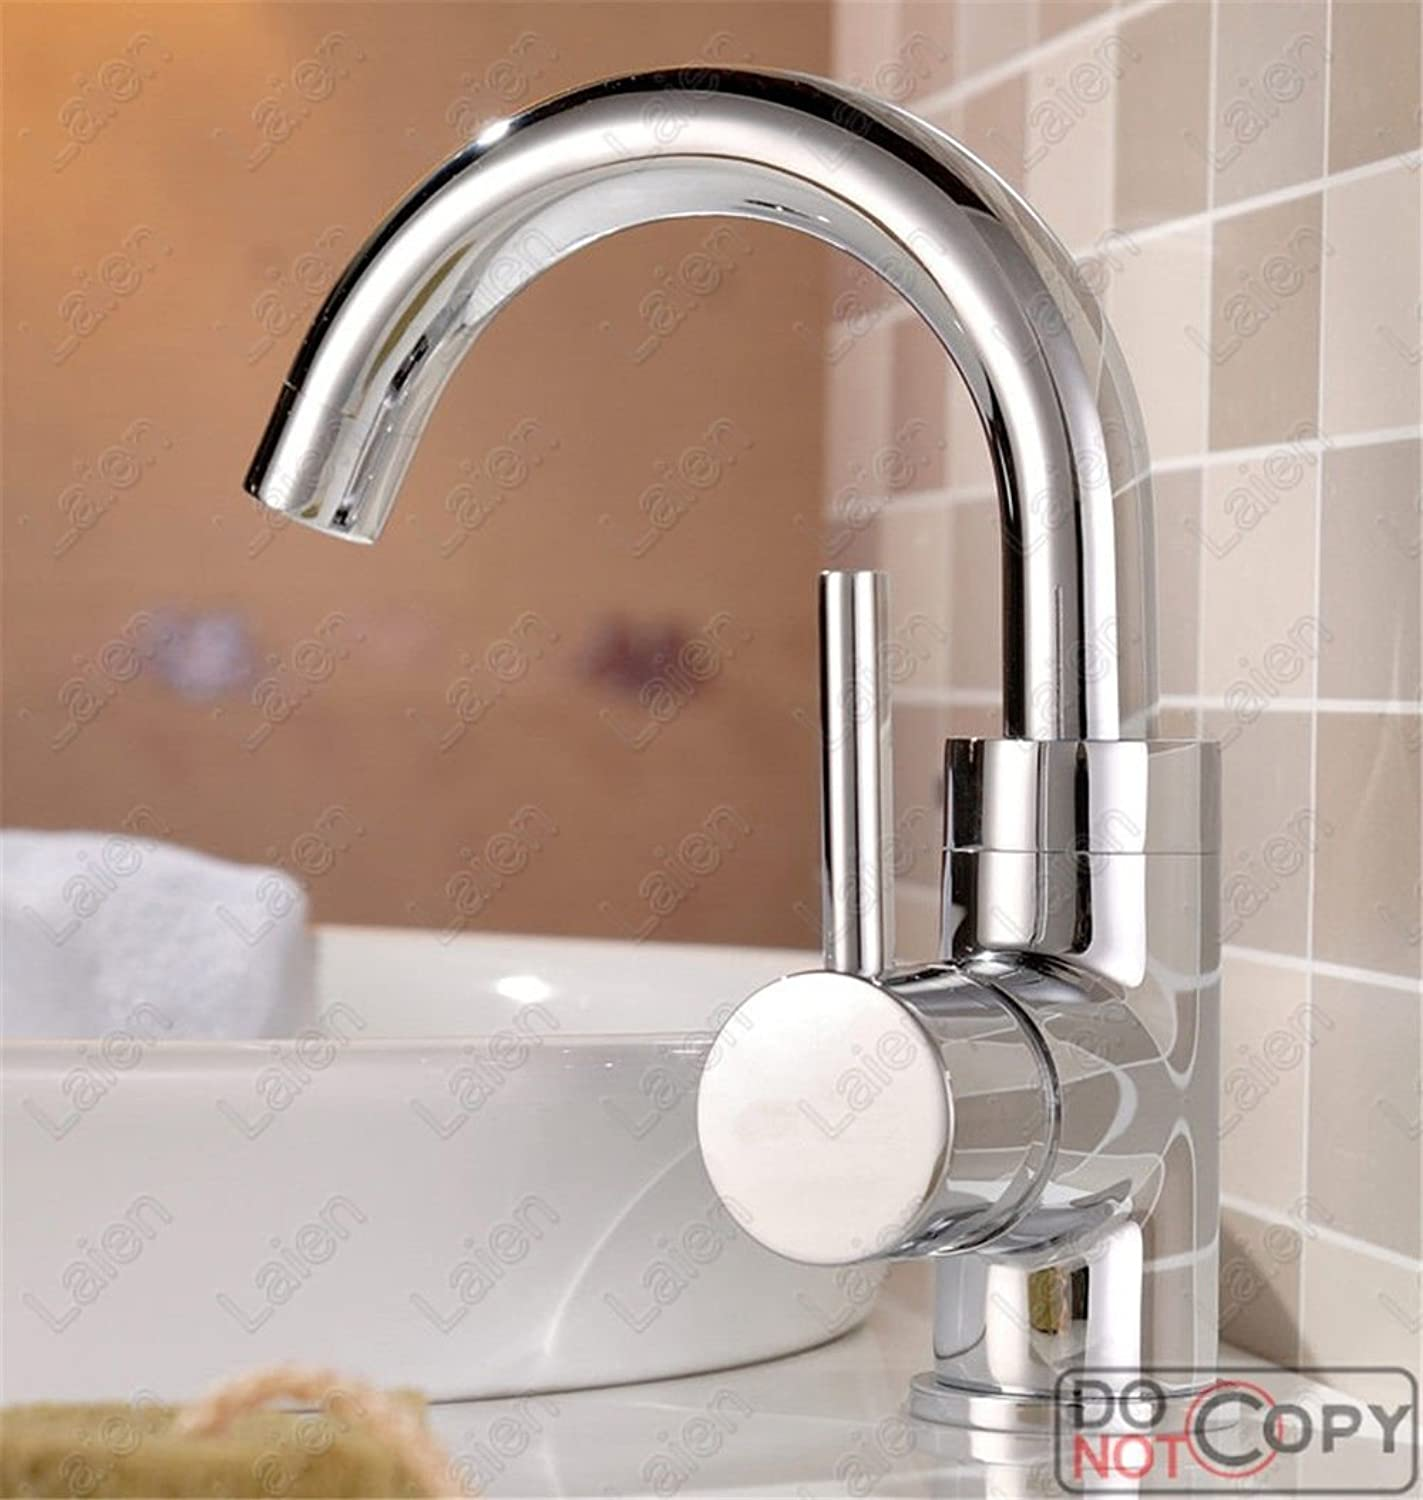 AQMMi Bathroom Sink Faucet Basin Mixer Tap Brass Single Lever Single Hole Hot and Cold Water Basin Sink Tap Bathroom Bar Faucet